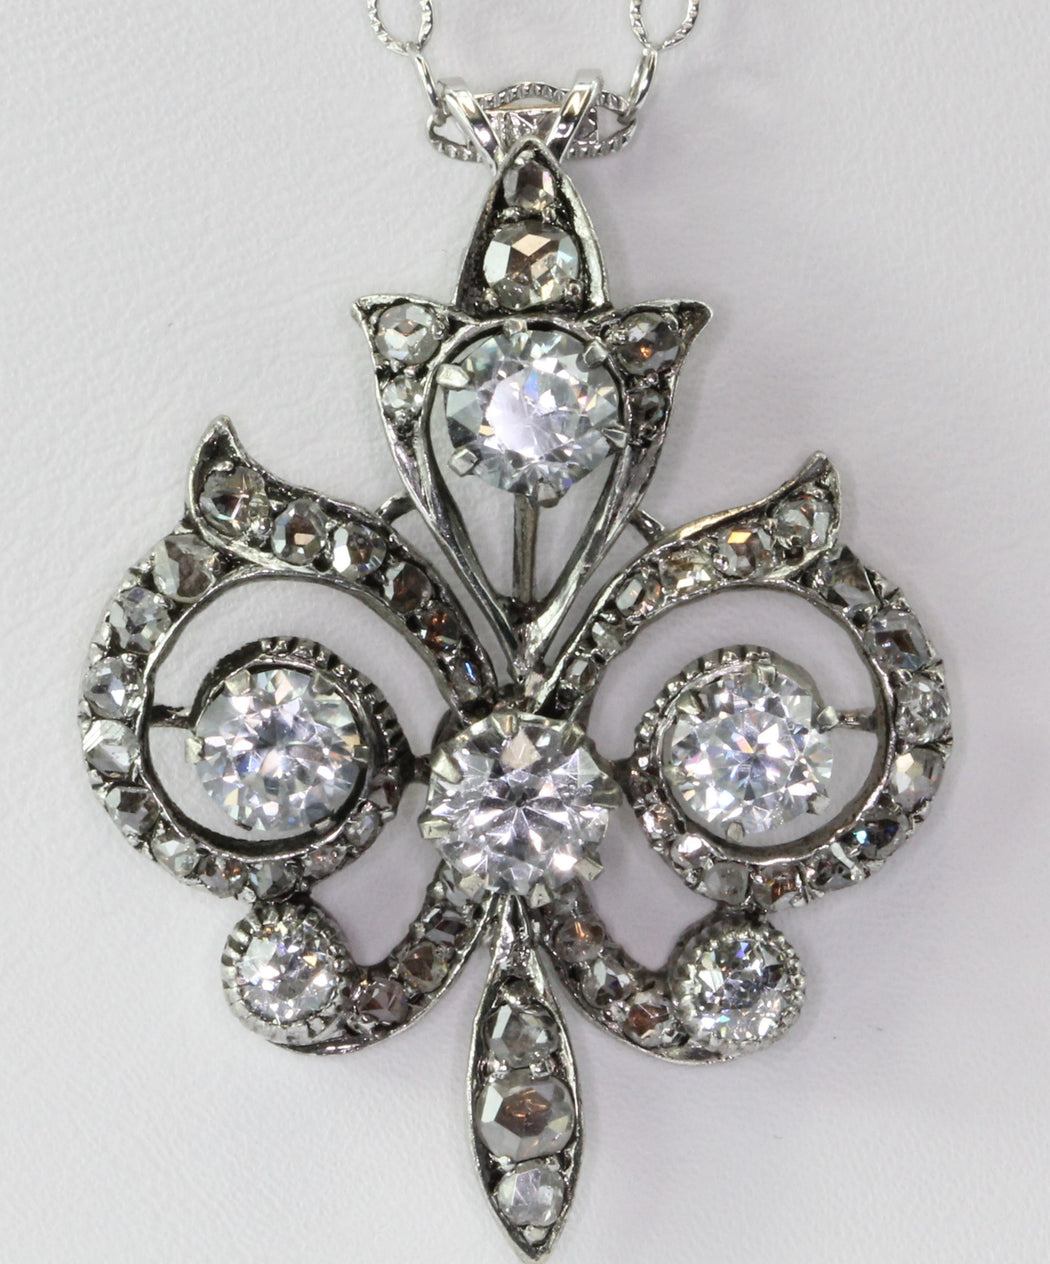 Victorian 14K White Gold Fleur de Lis w/ Rose Cut Diamonds & Sapphires Necklace - Queen May